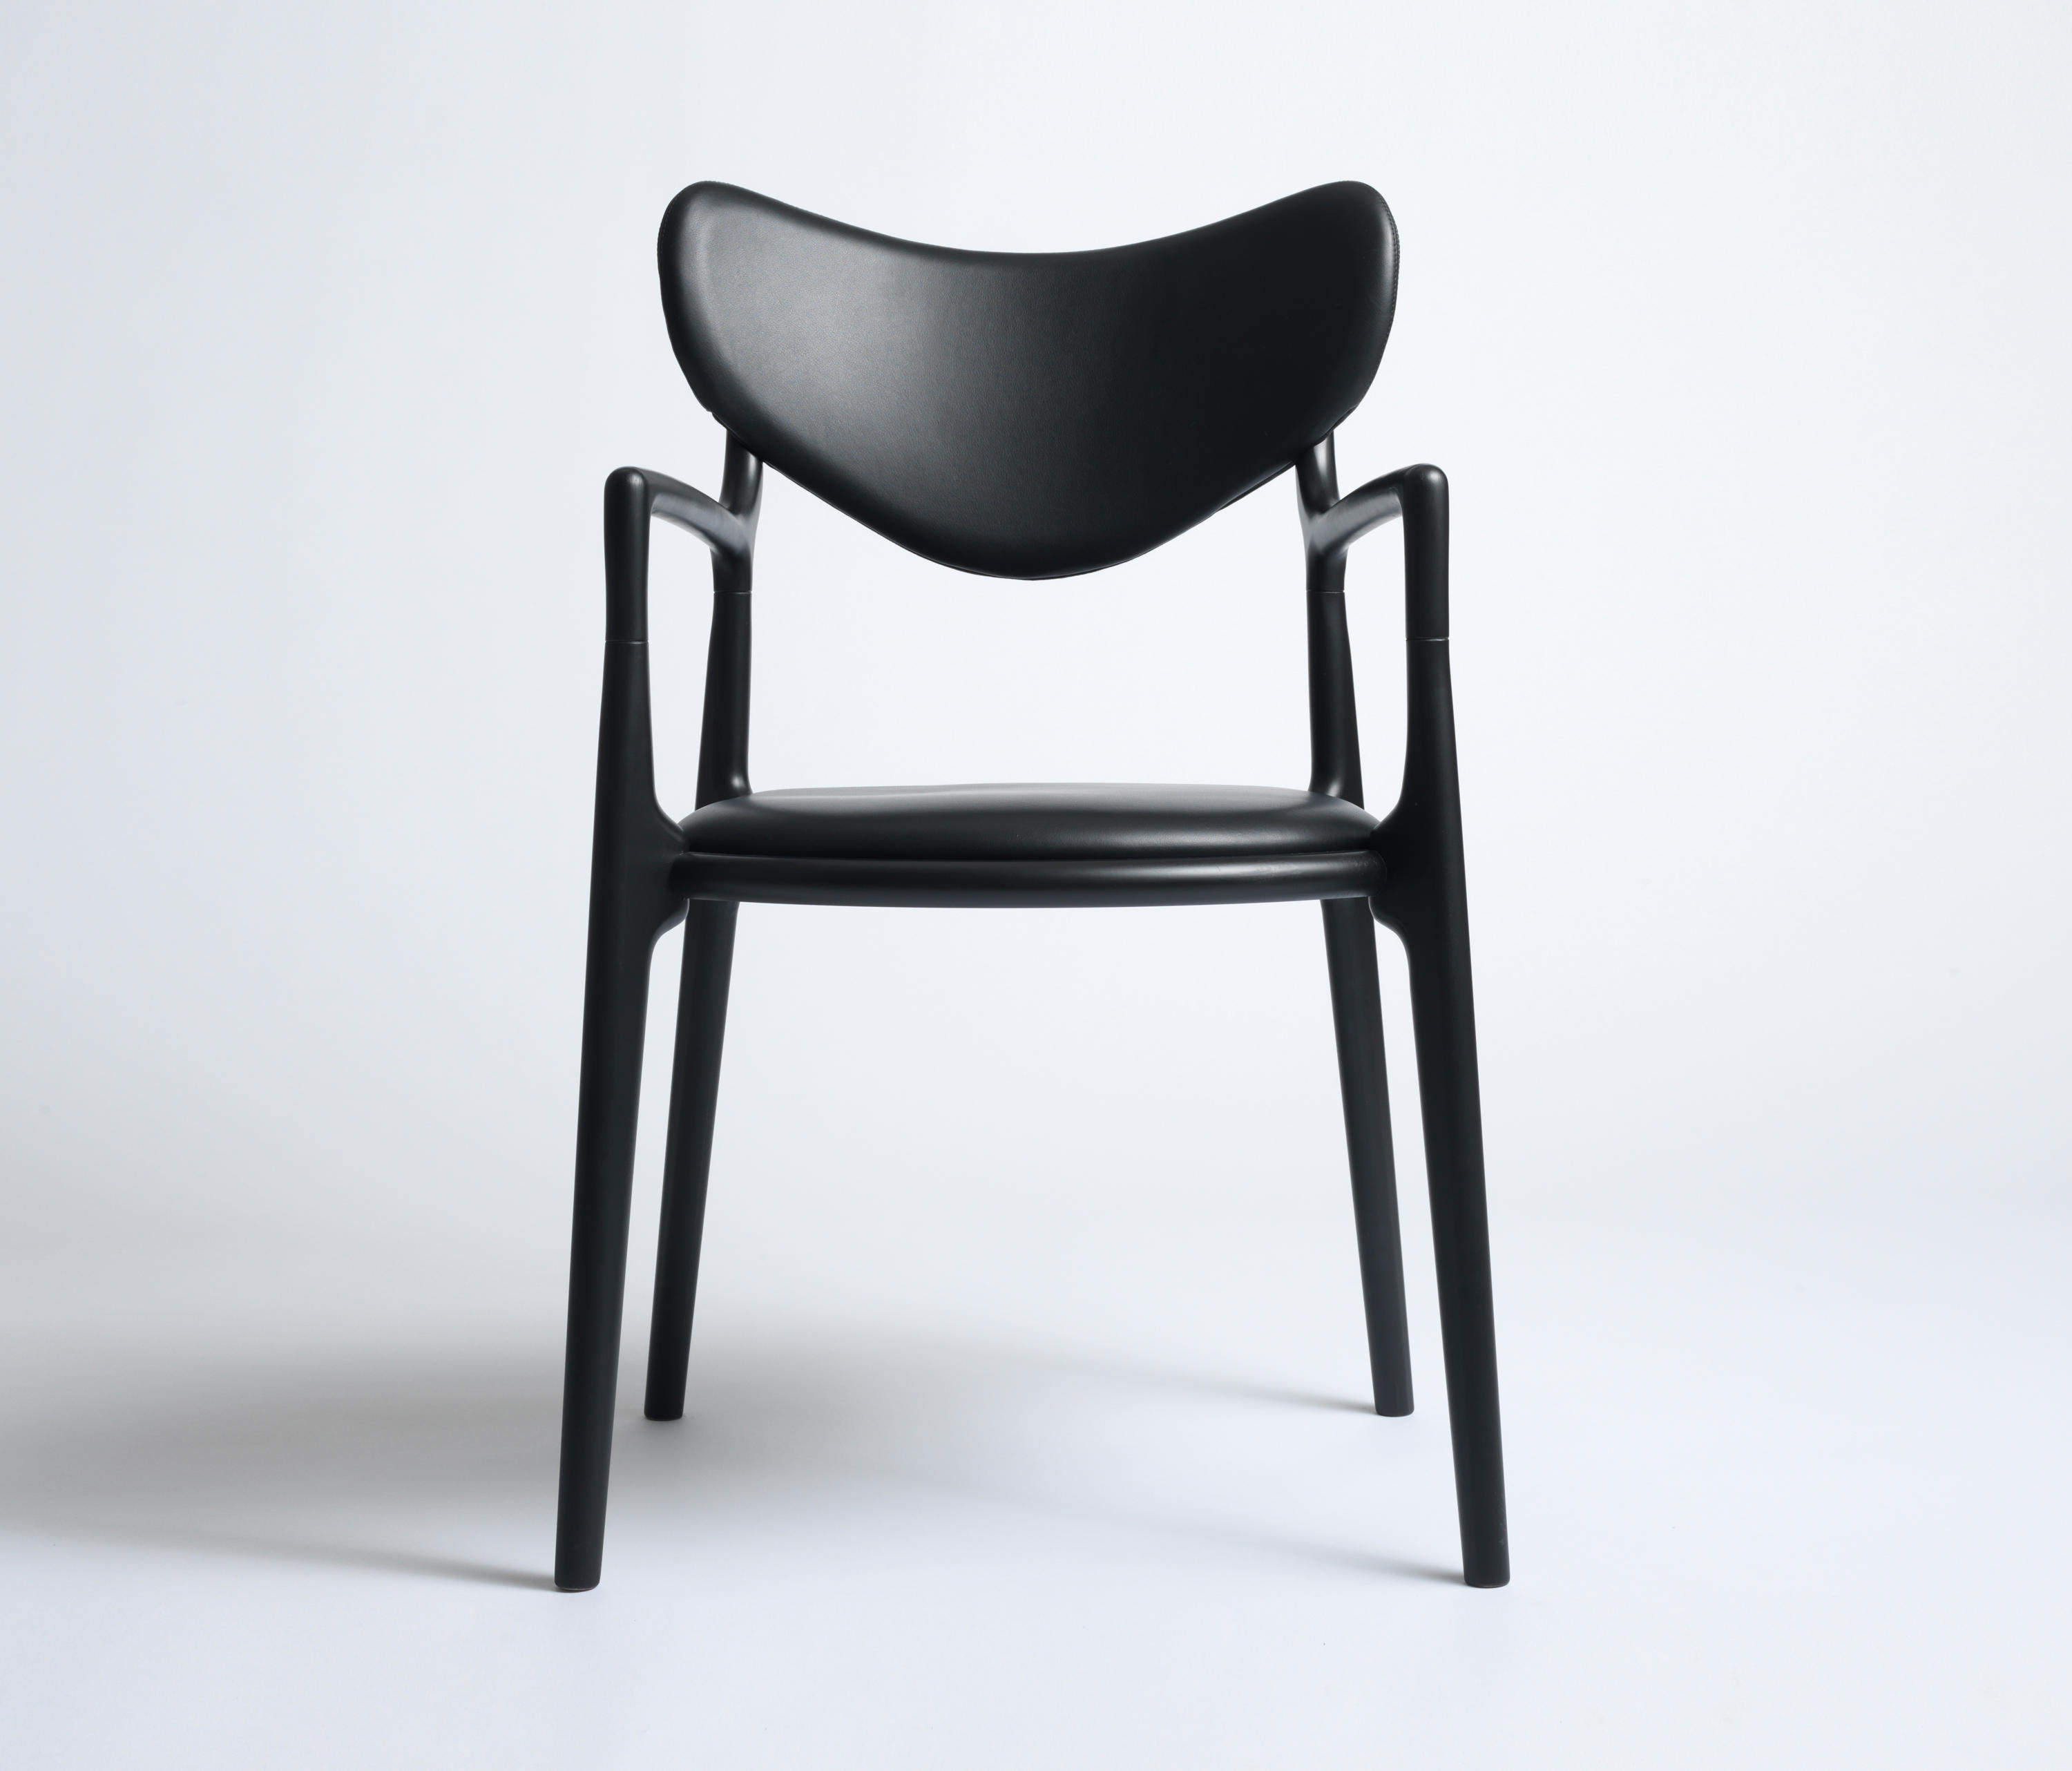 black salon chairs wicker dining and table chair beech from true north designs architonic by